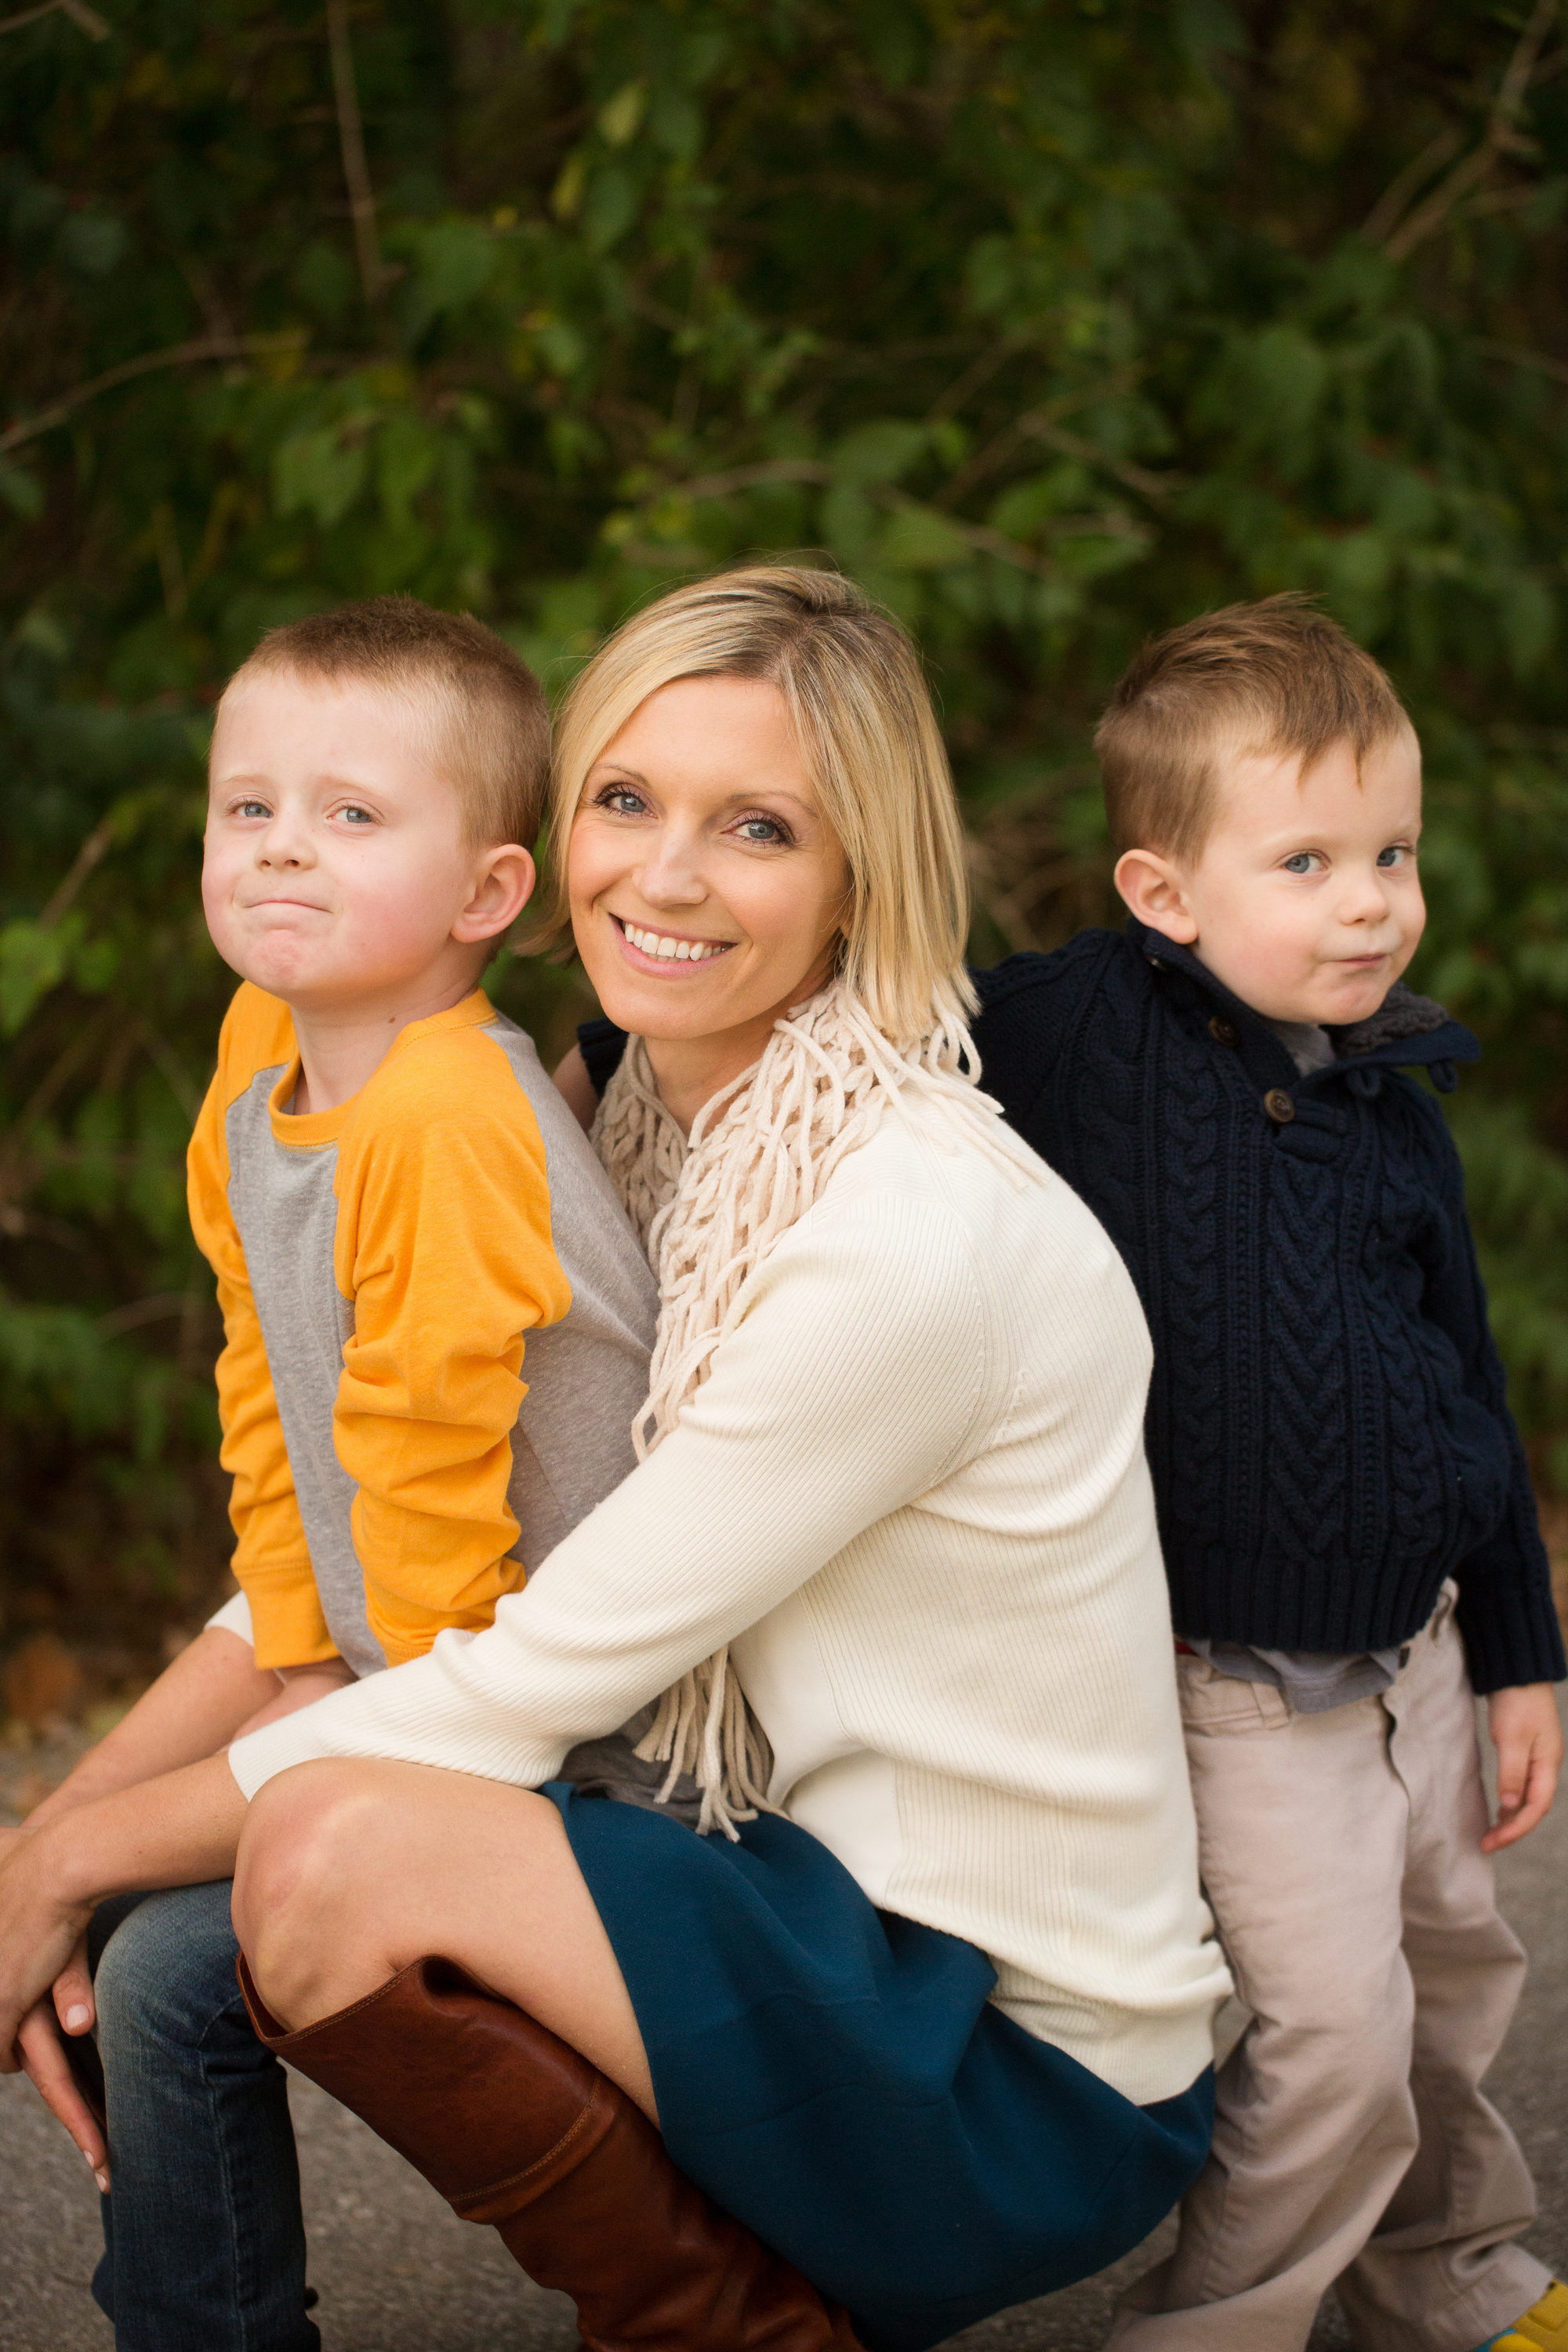 St-Louis-Family-Photographer_Ashley-Becker_0044.jpg